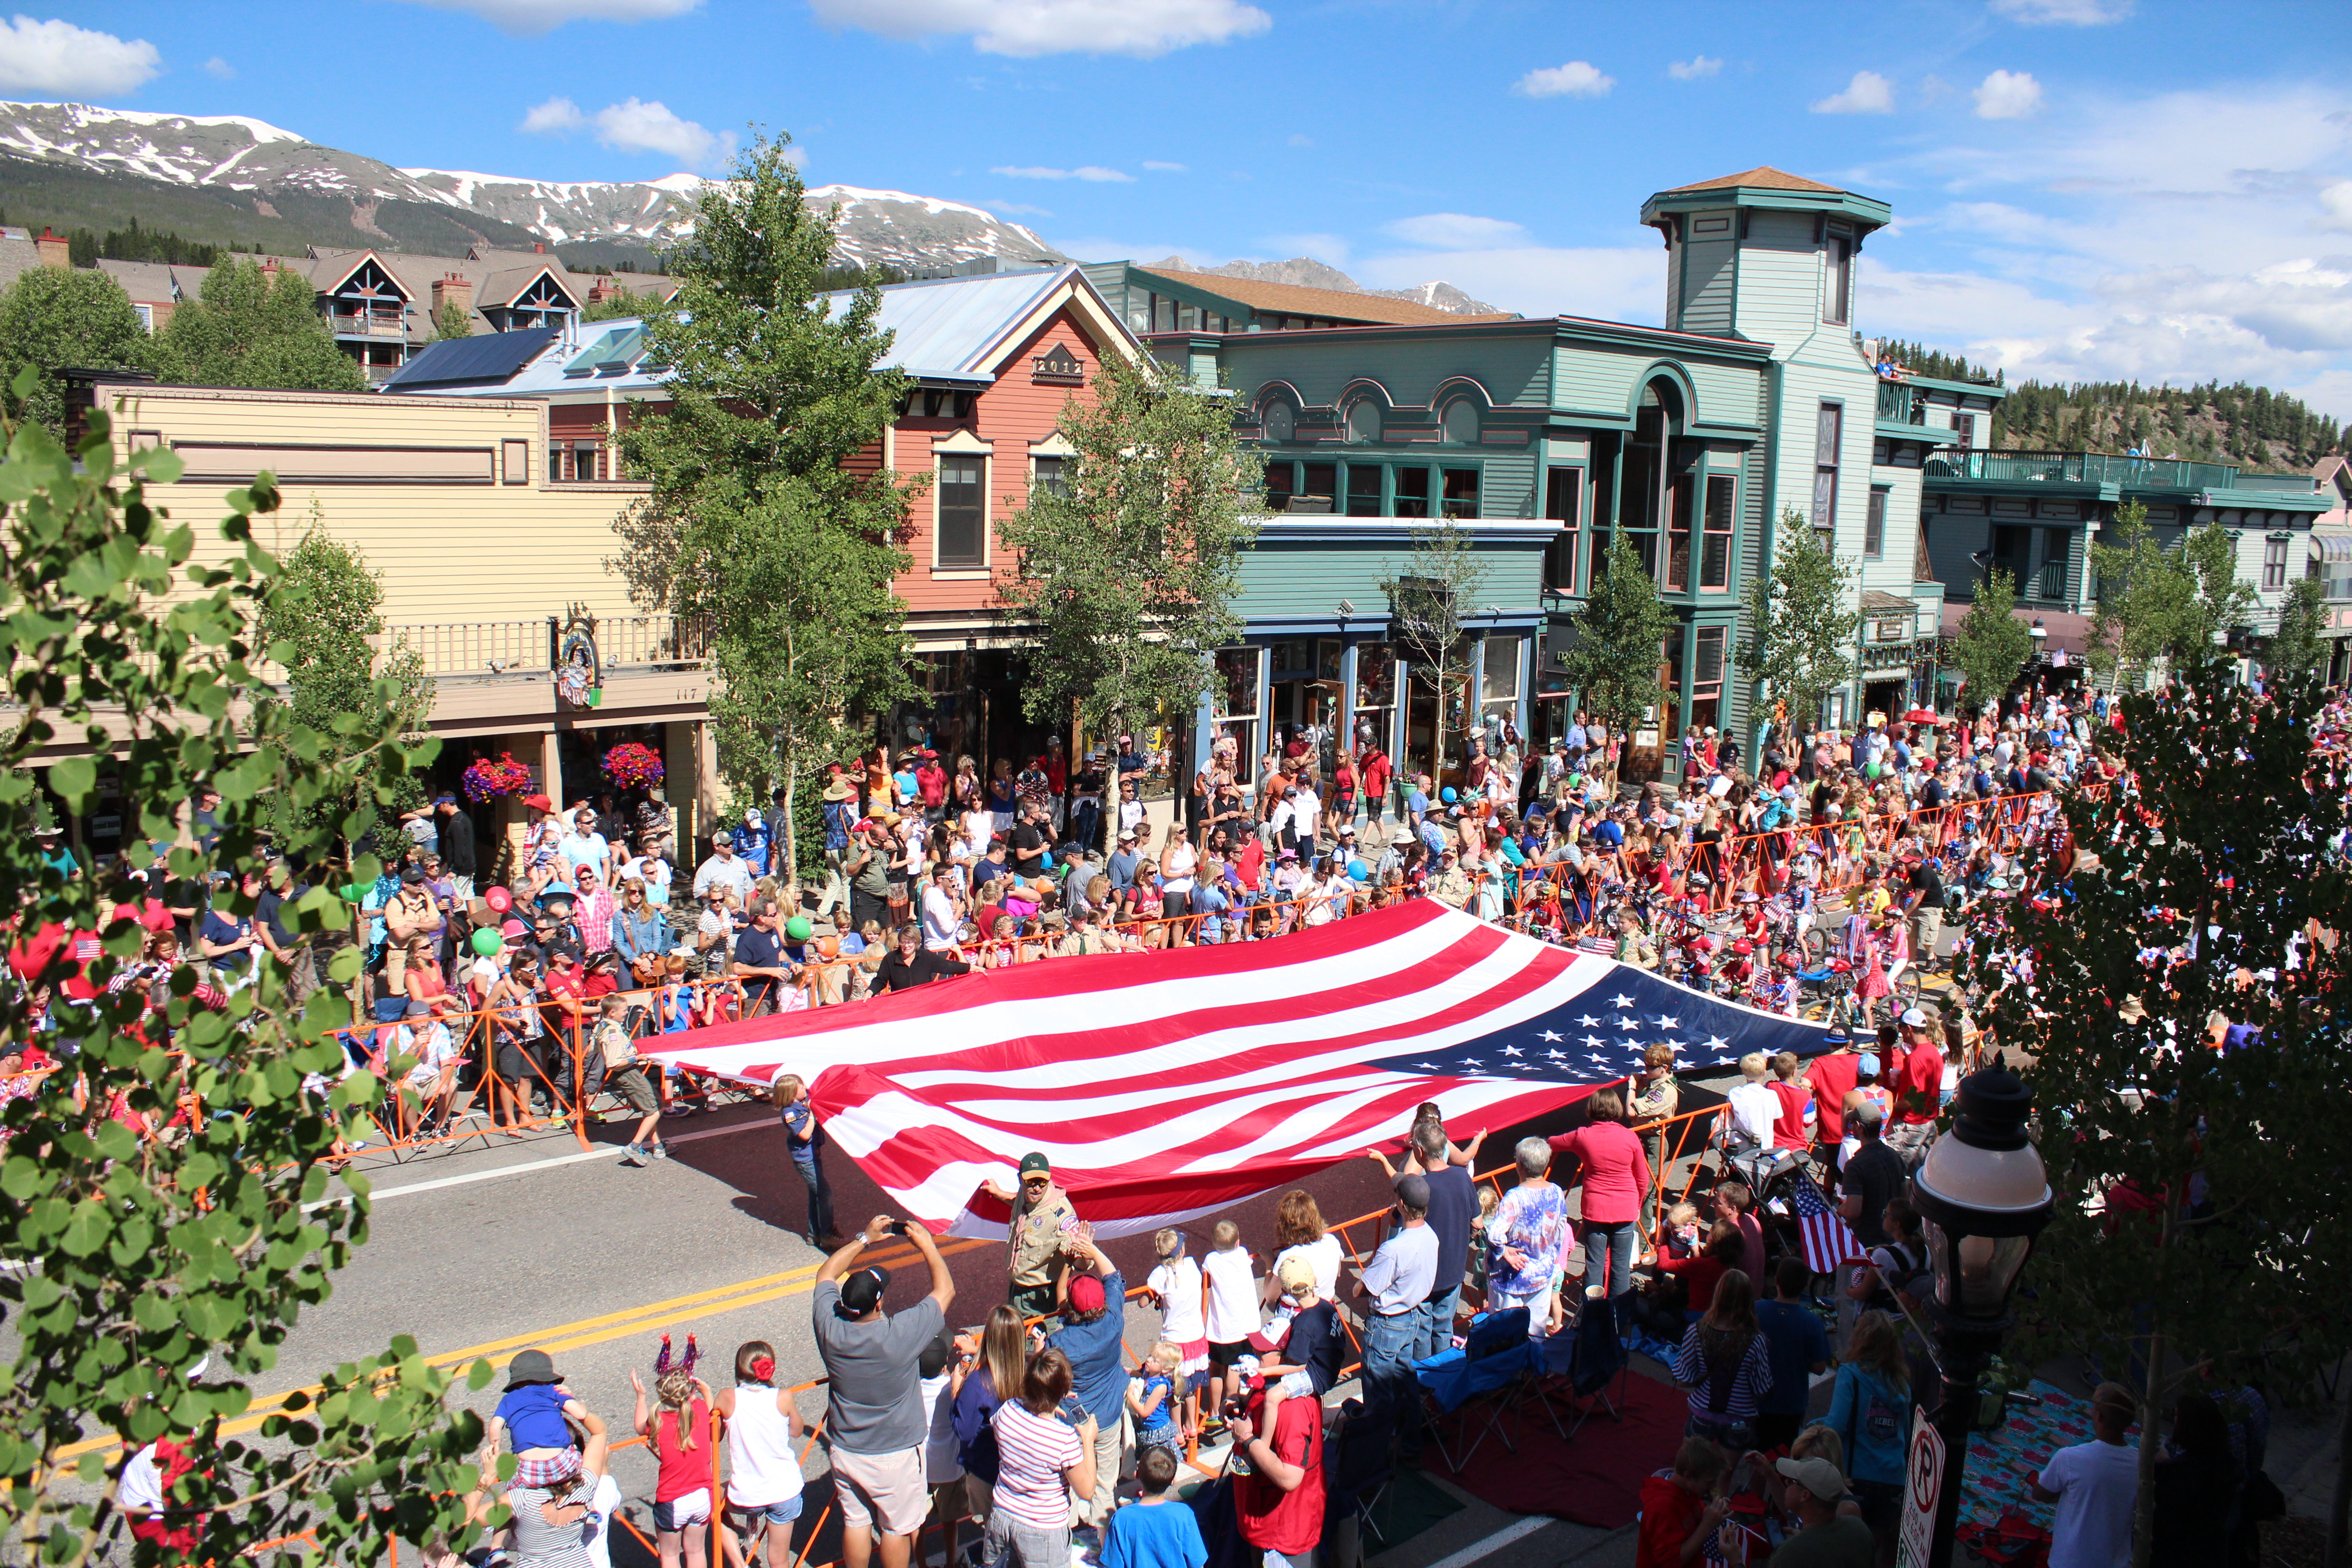 4th of July Parade in Breckenridge